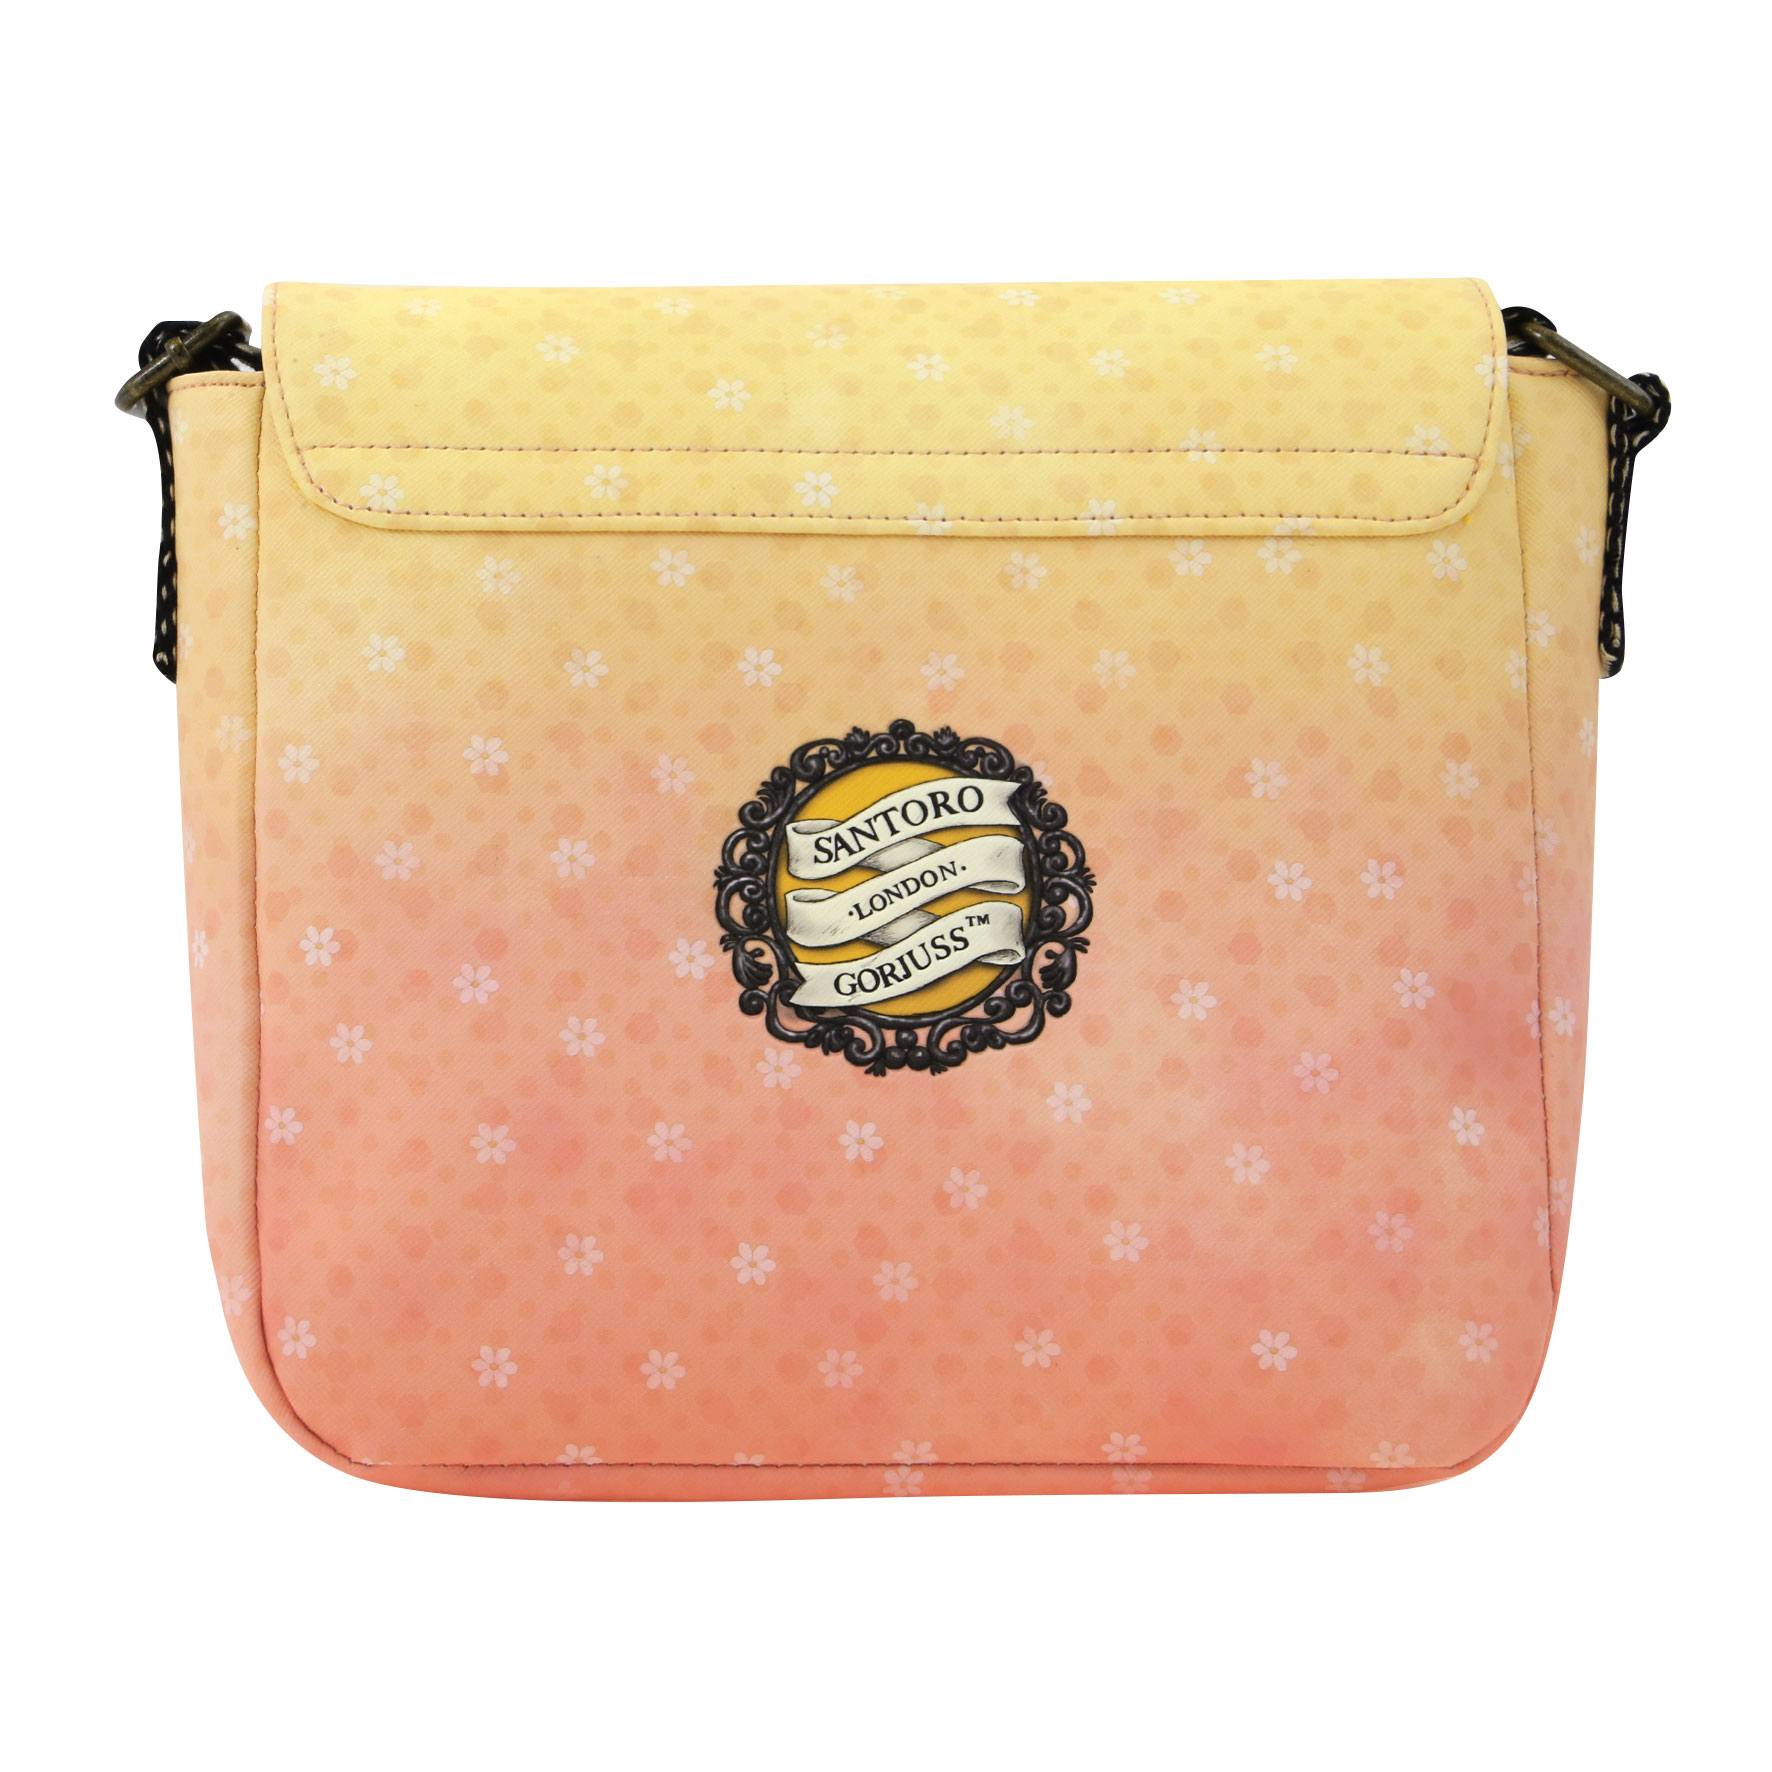 Gorjuss Cross Body Bag Bee-Loved (Just Bee-Cause)